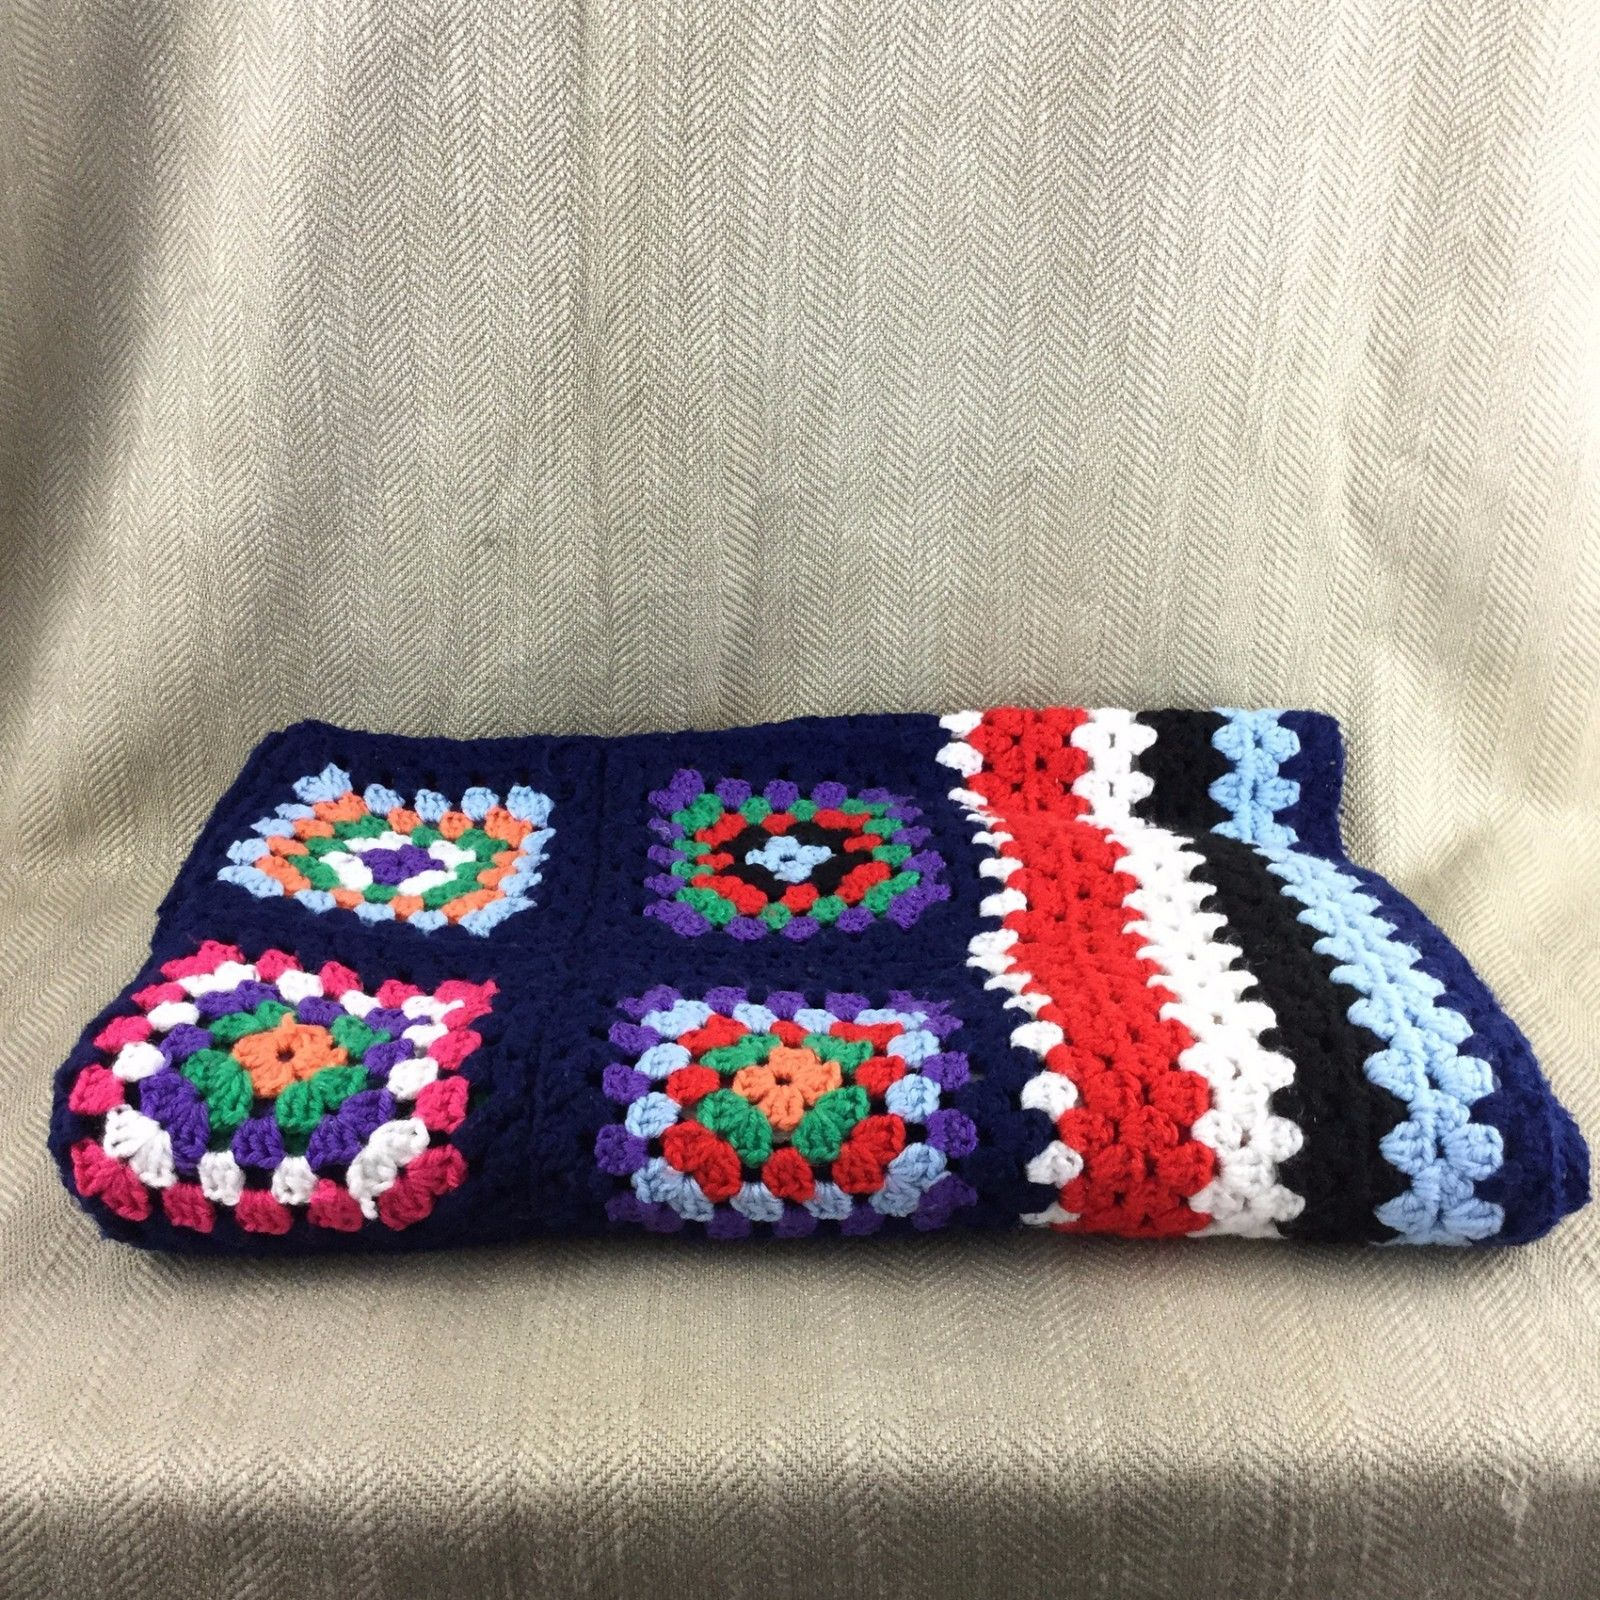 Vintage Blanket Granny Square Afghan Throw Handmade Crochet Blue Red ...